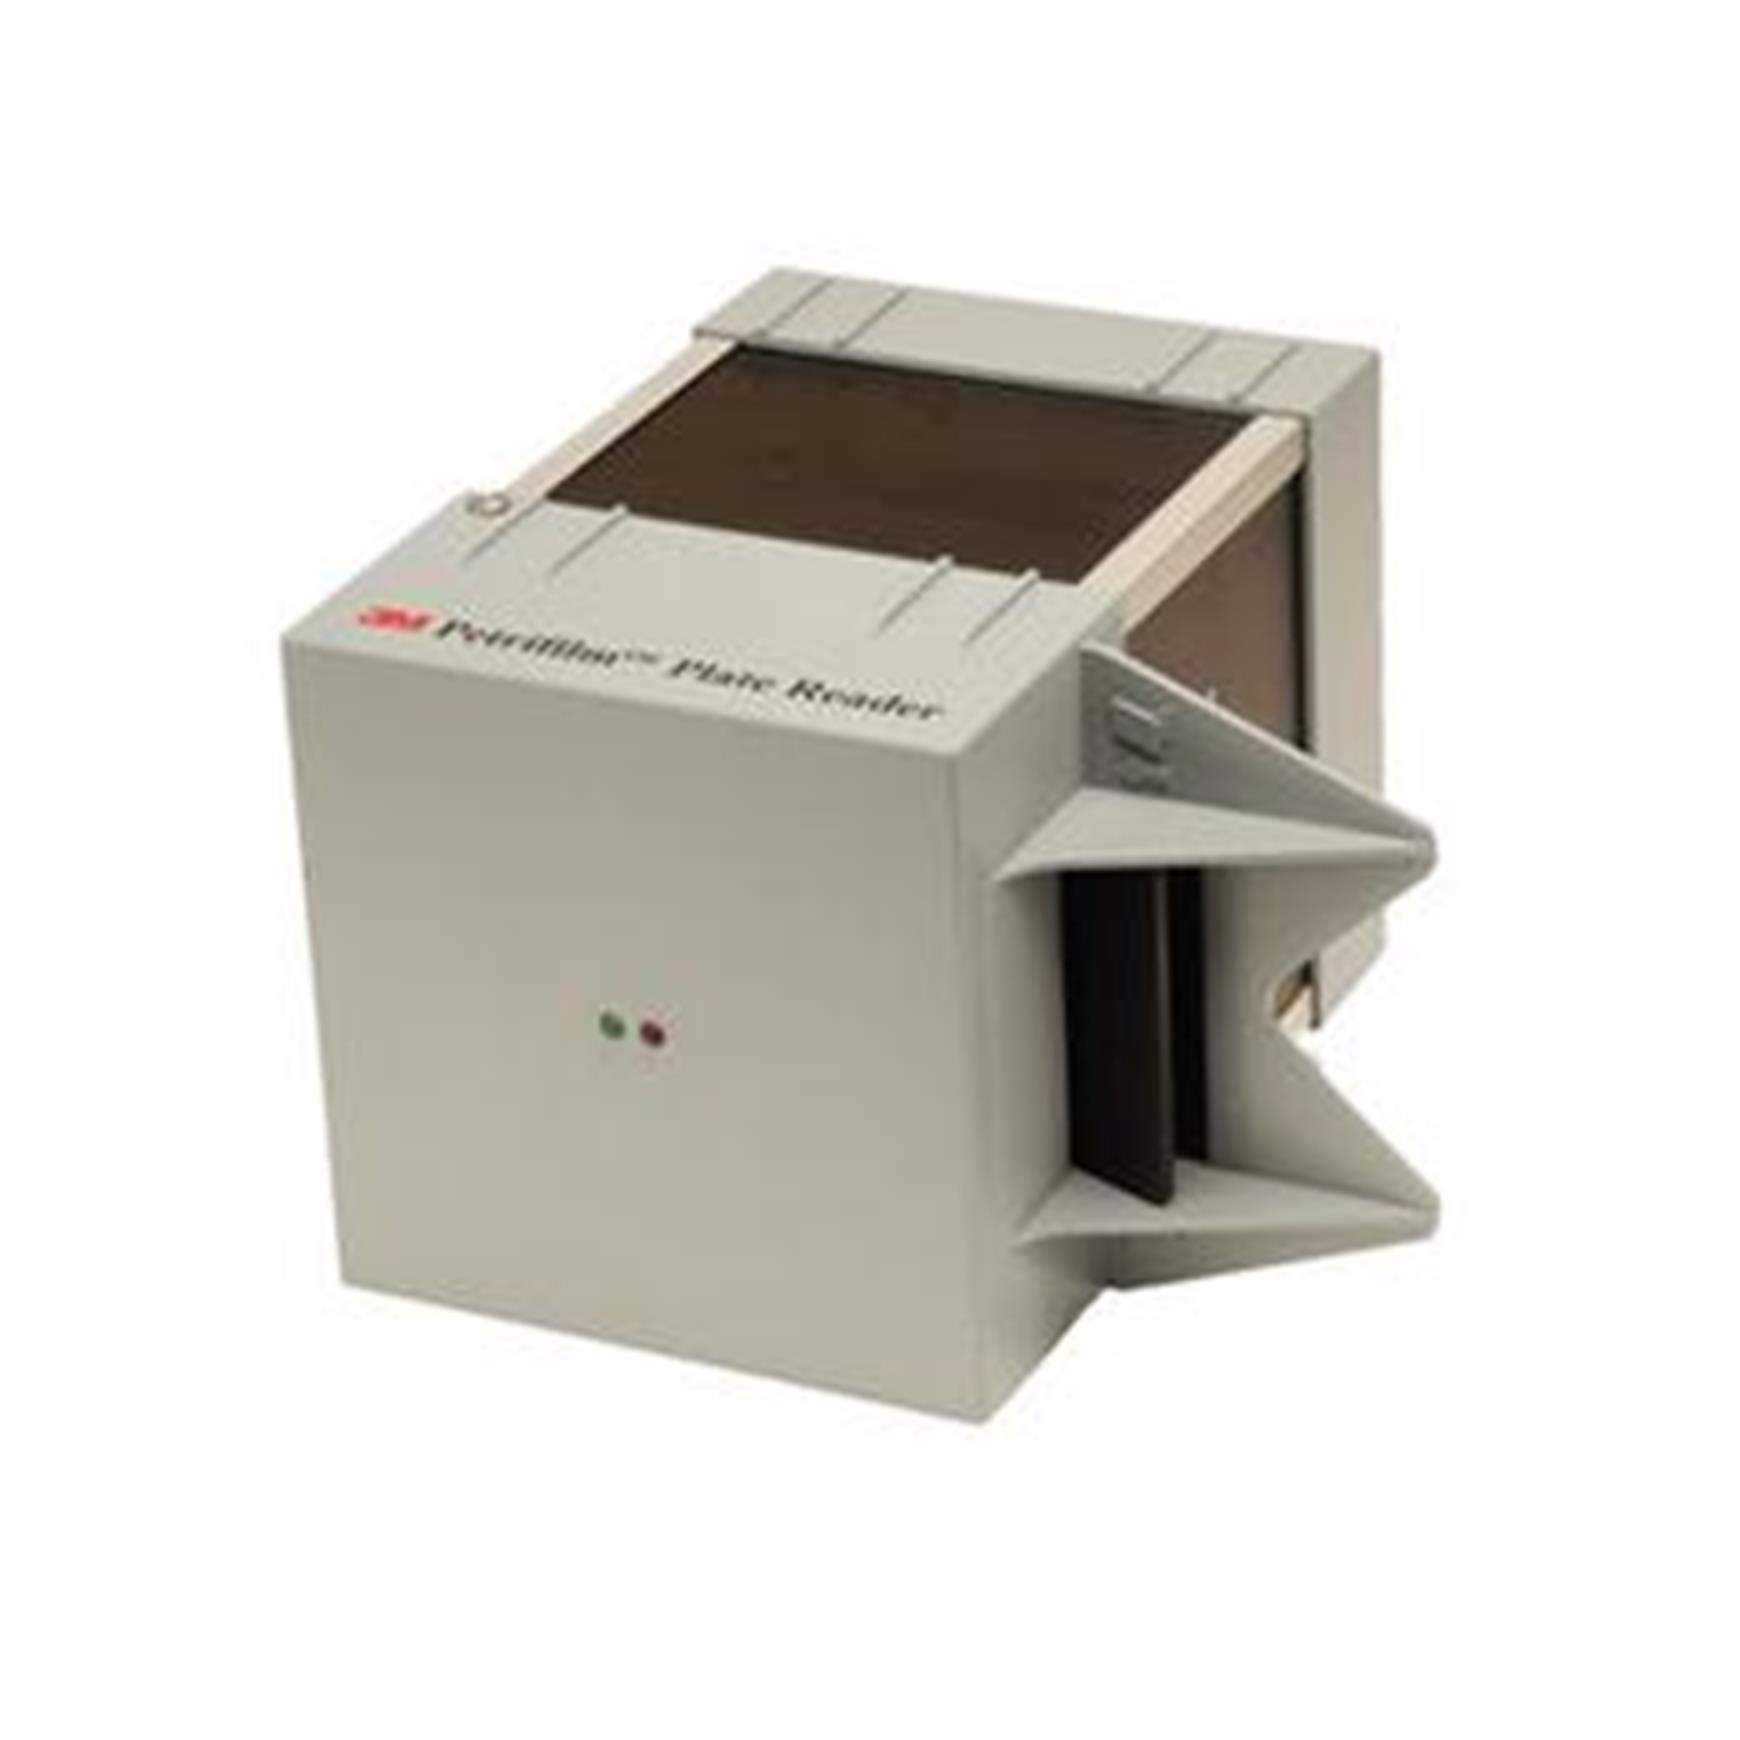 3M 6476 Petrifilm Plate Reader Extended Service